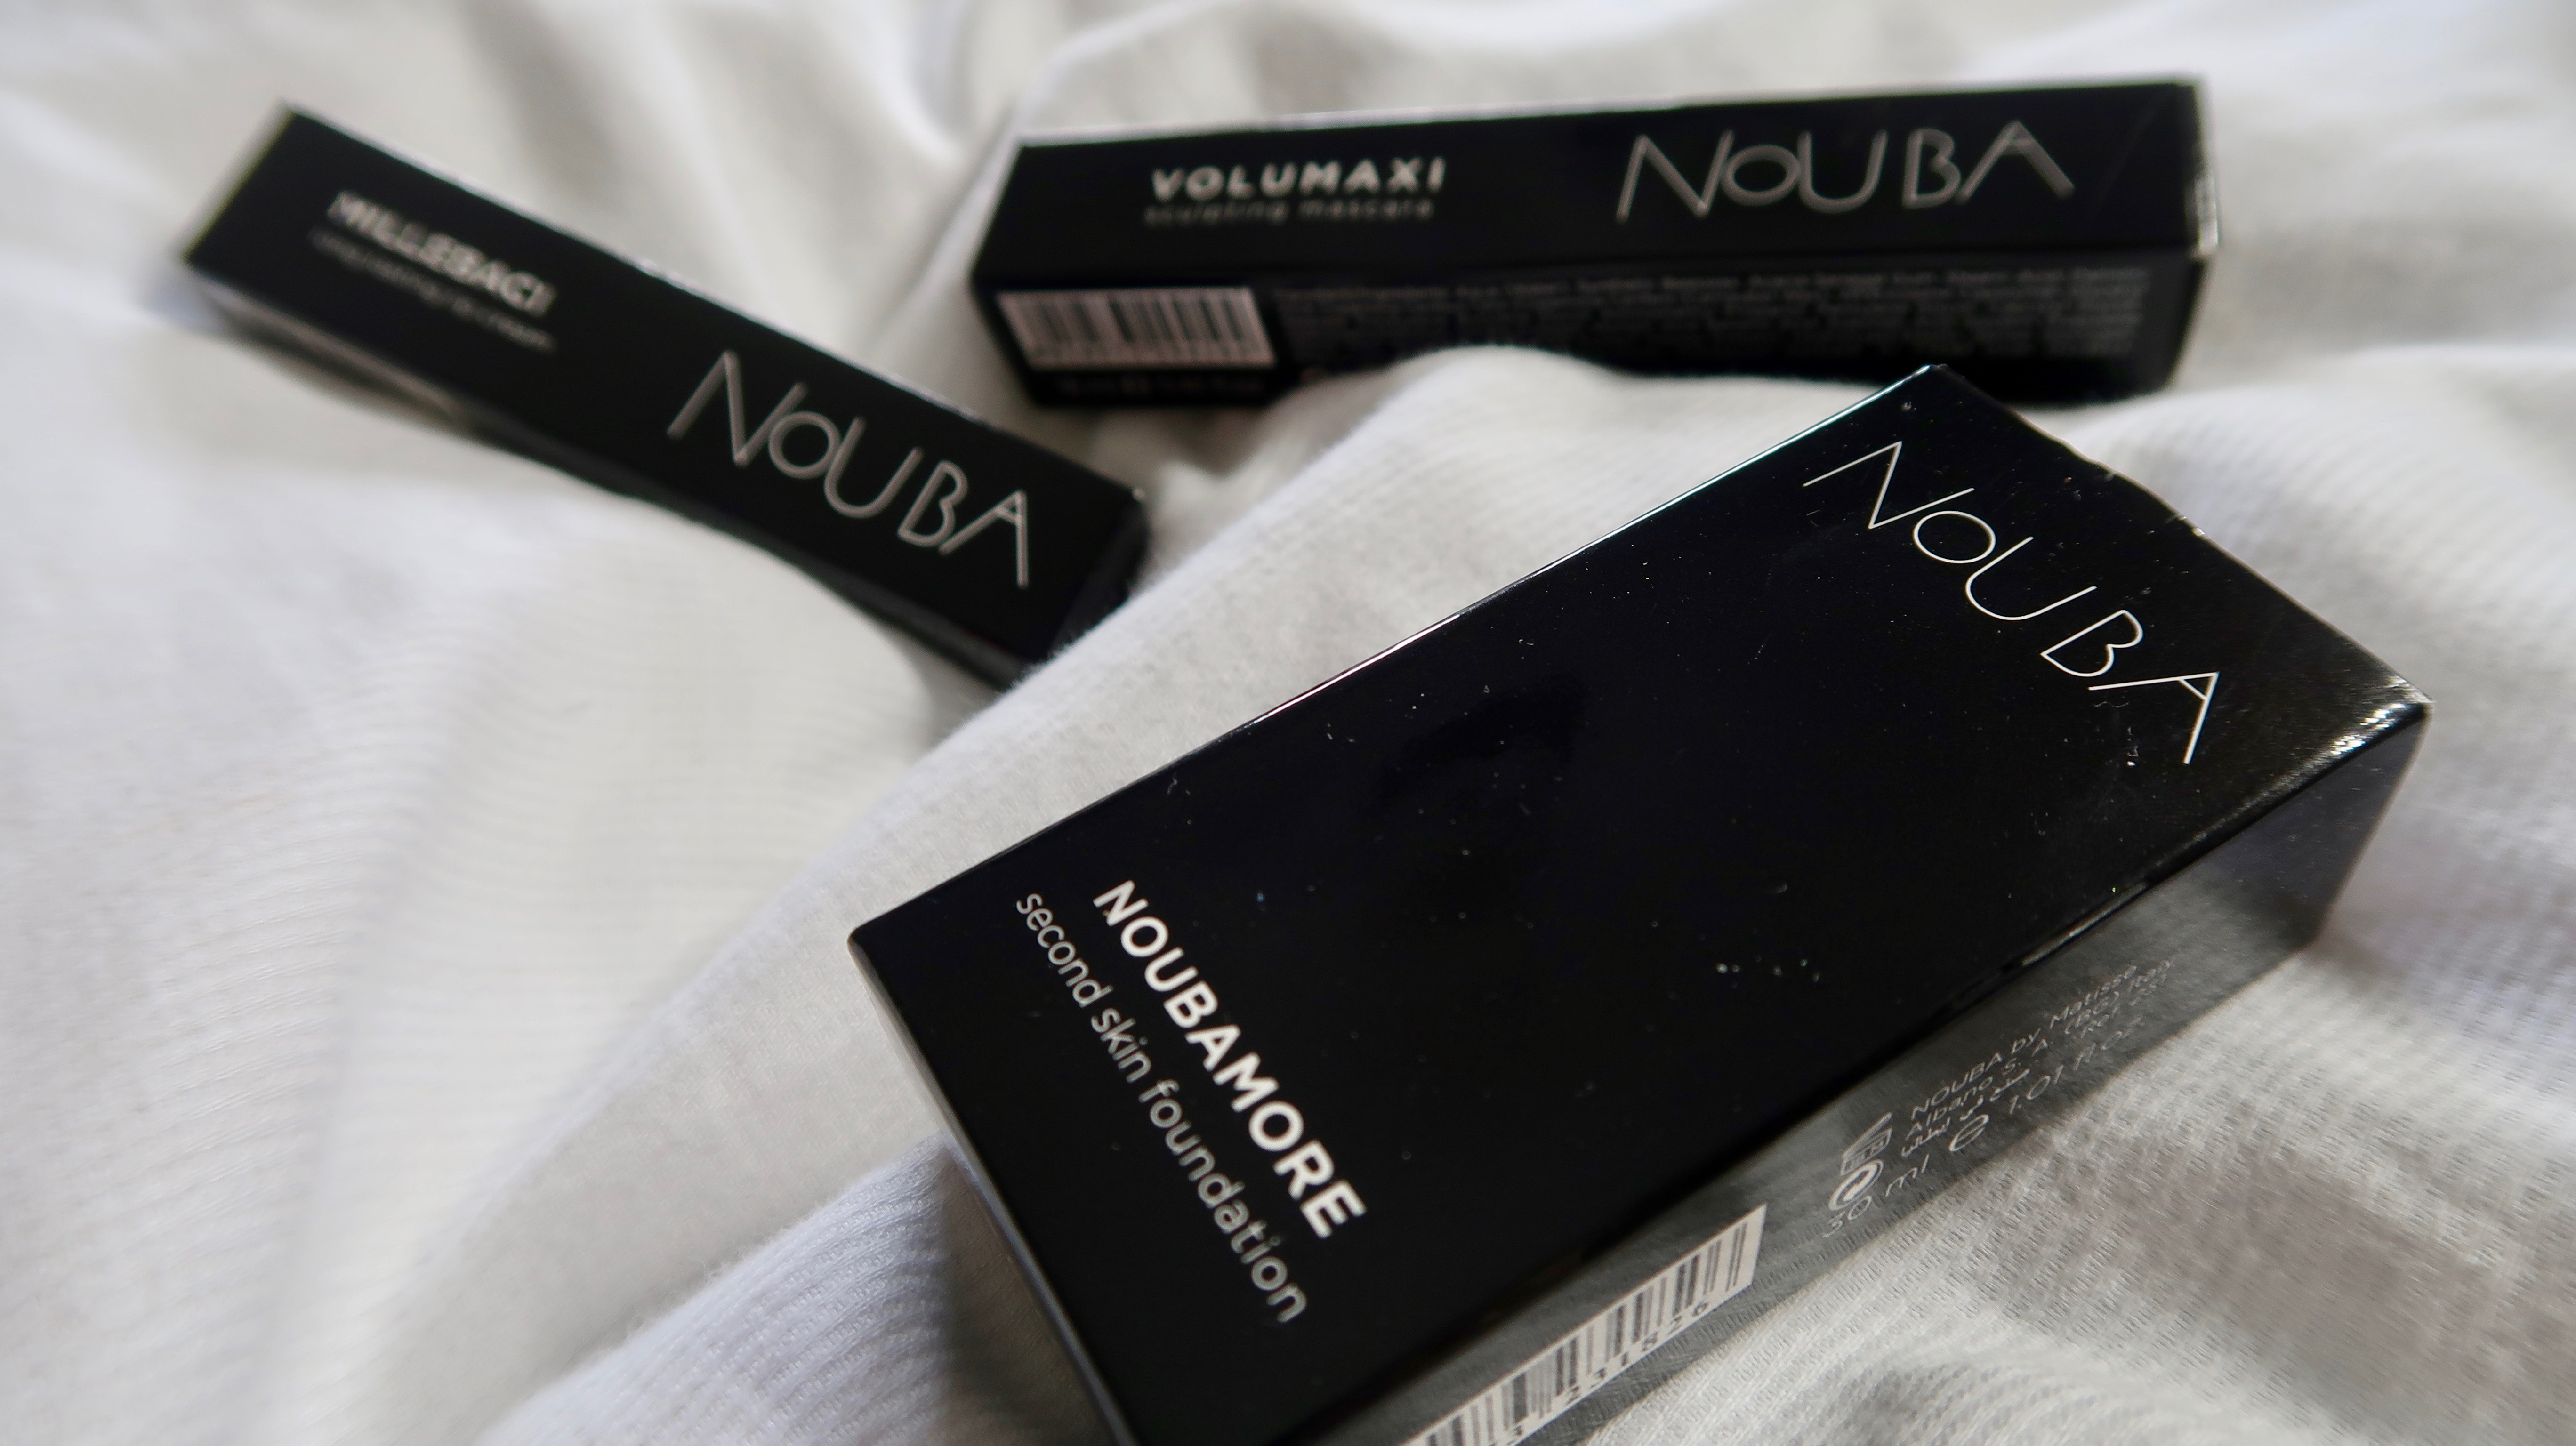 Nouba Beauty Base's newest high end brand is now available | I reviewed this professional make up and gave my thoughts | Elle Blonde Luxury Lifestyle Destination Blog